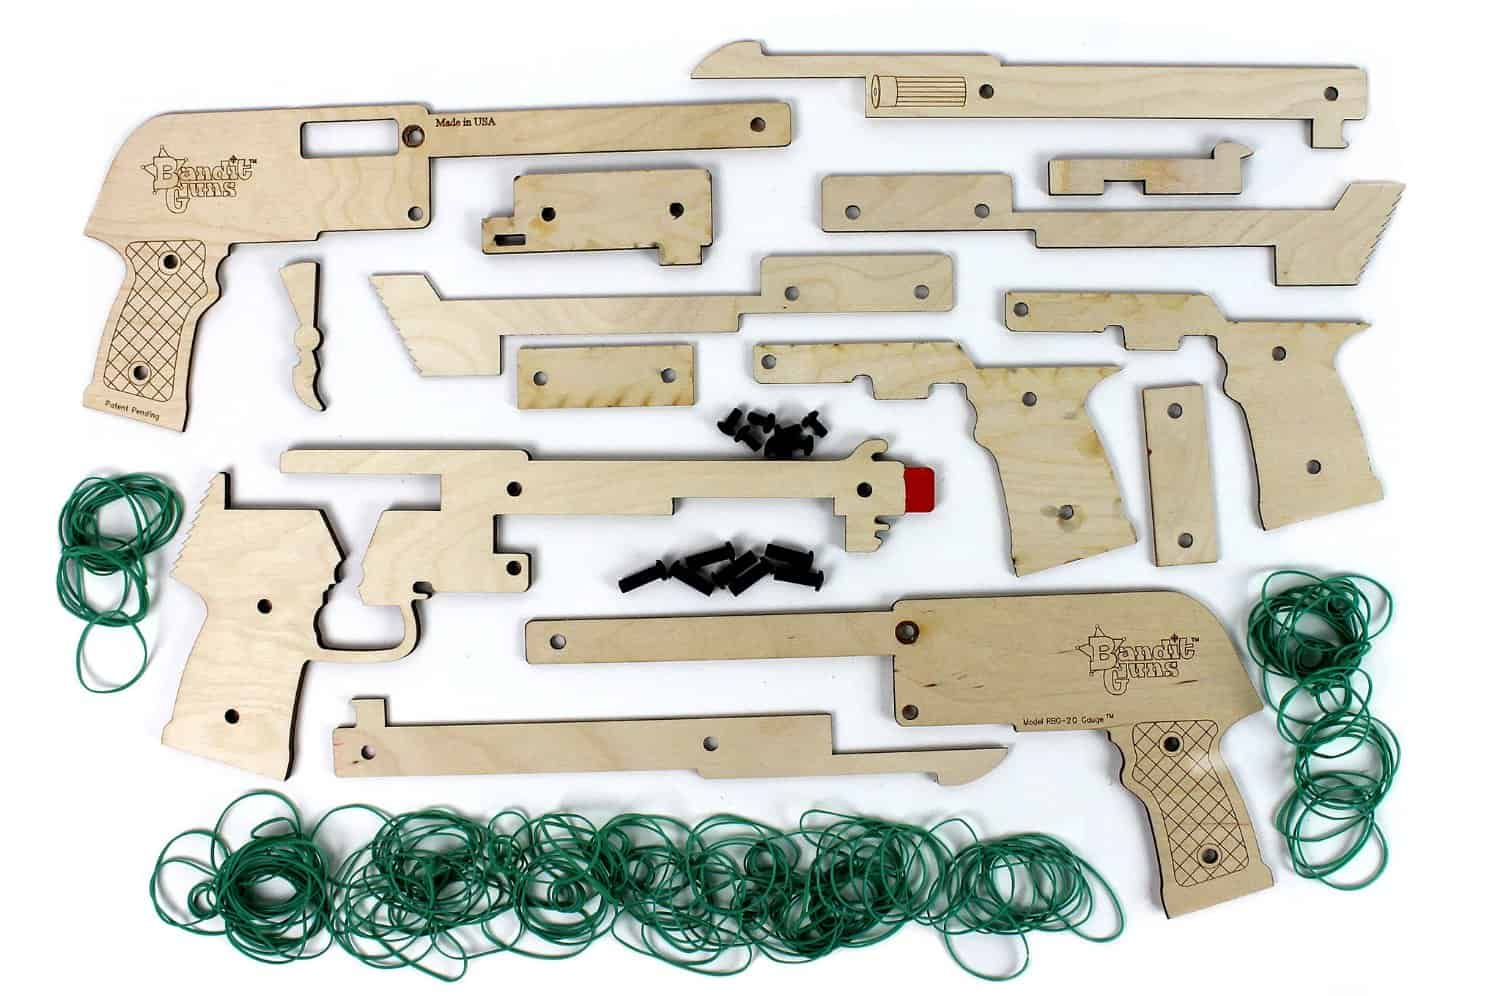 Bandit Guns Rubber band Gun DIY Kit